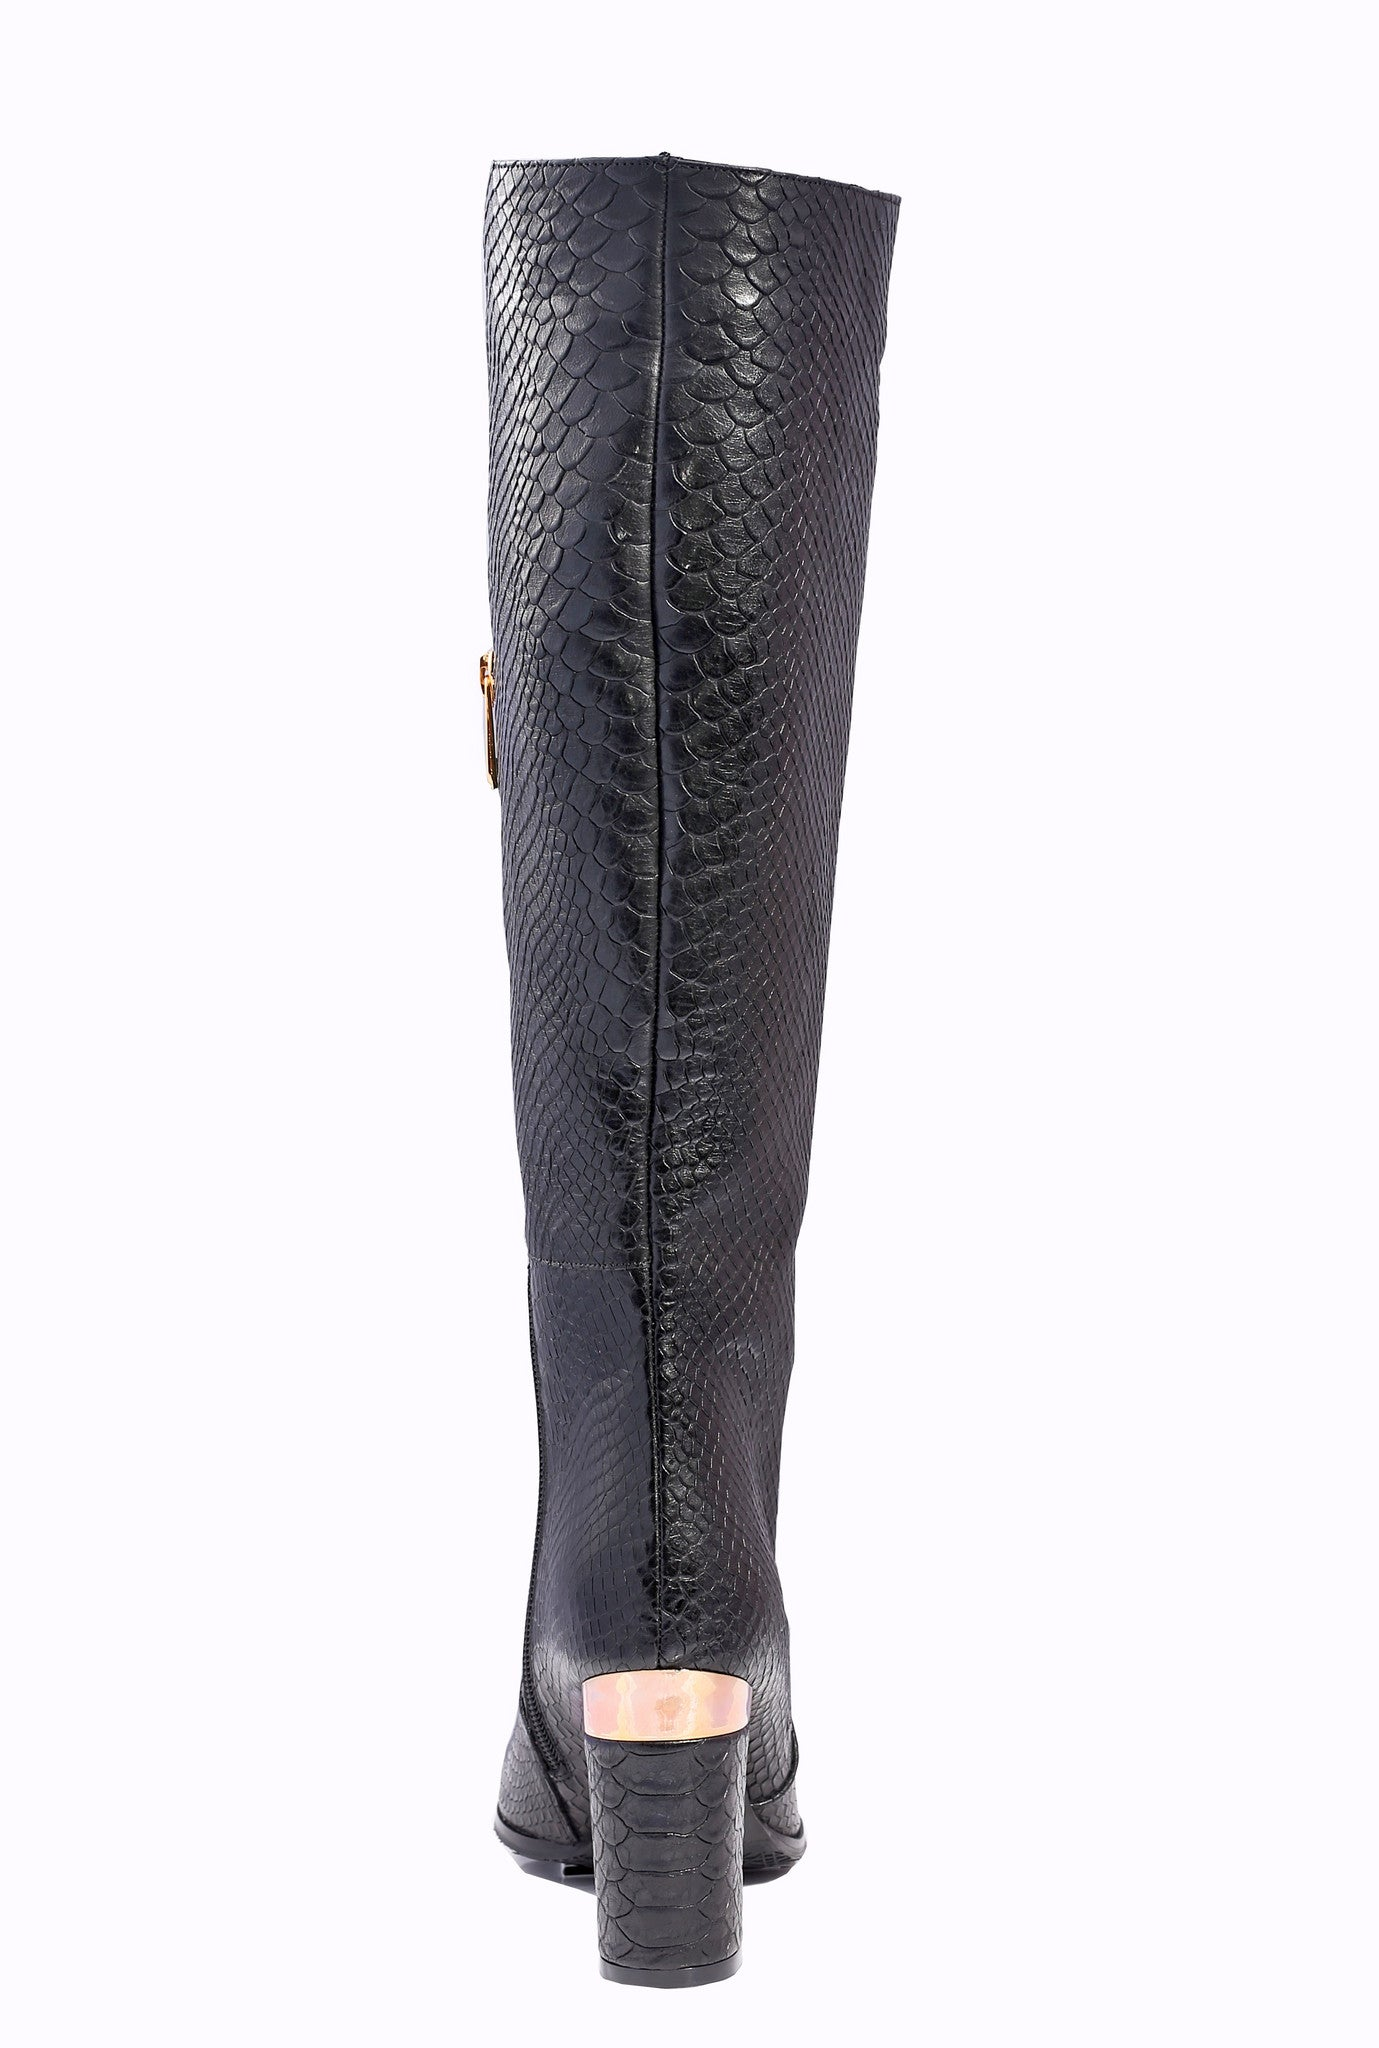 36f26b34fff7 ... BLACK   GOLD THIGH HIGH BOOTS - SOLD OUT